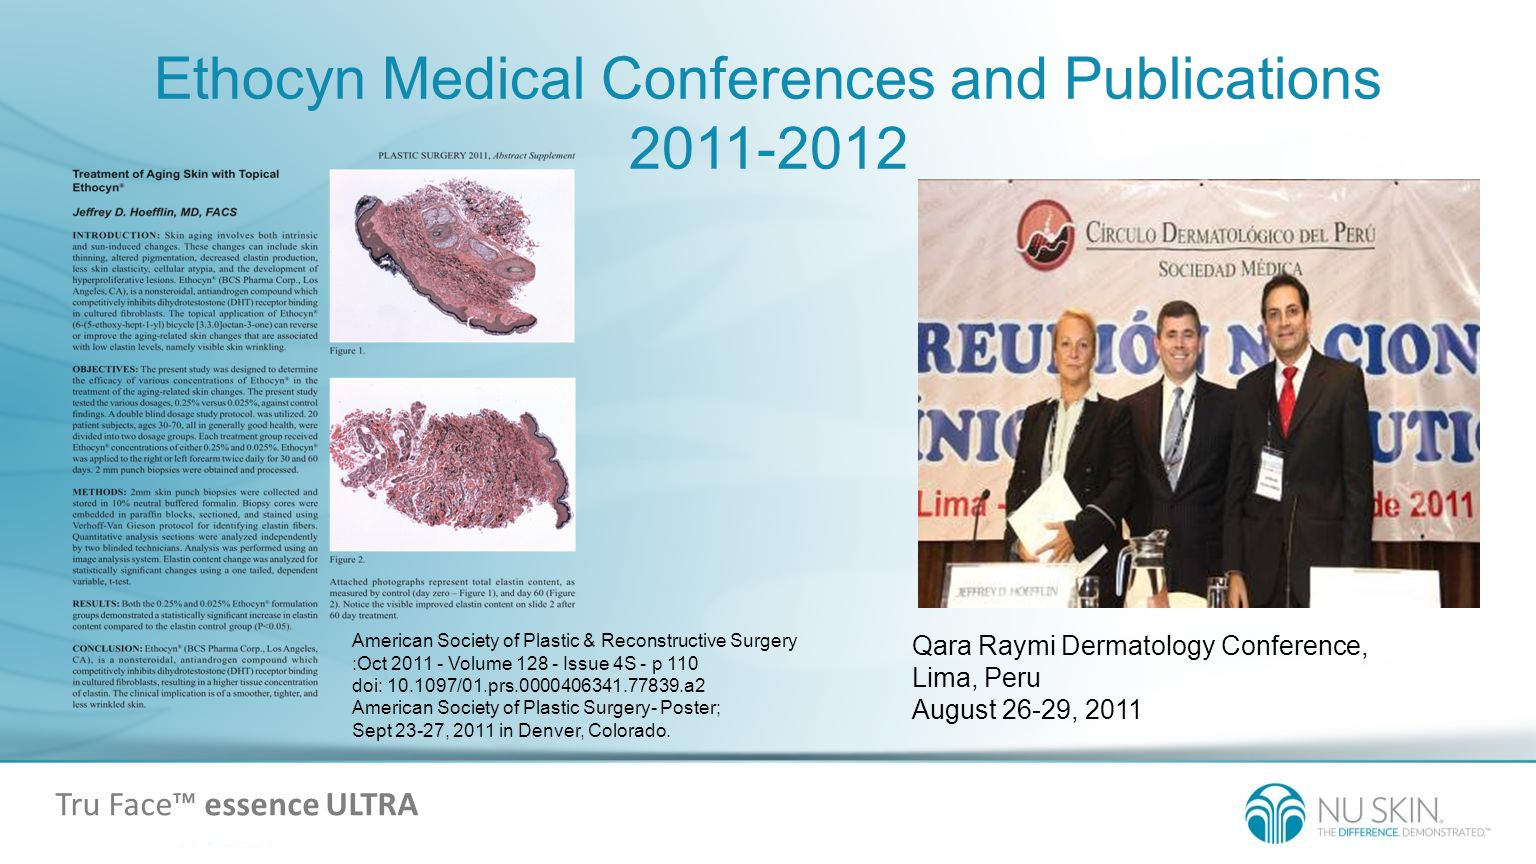 Ethocyn Medical Conferences and Publications 2011-2012